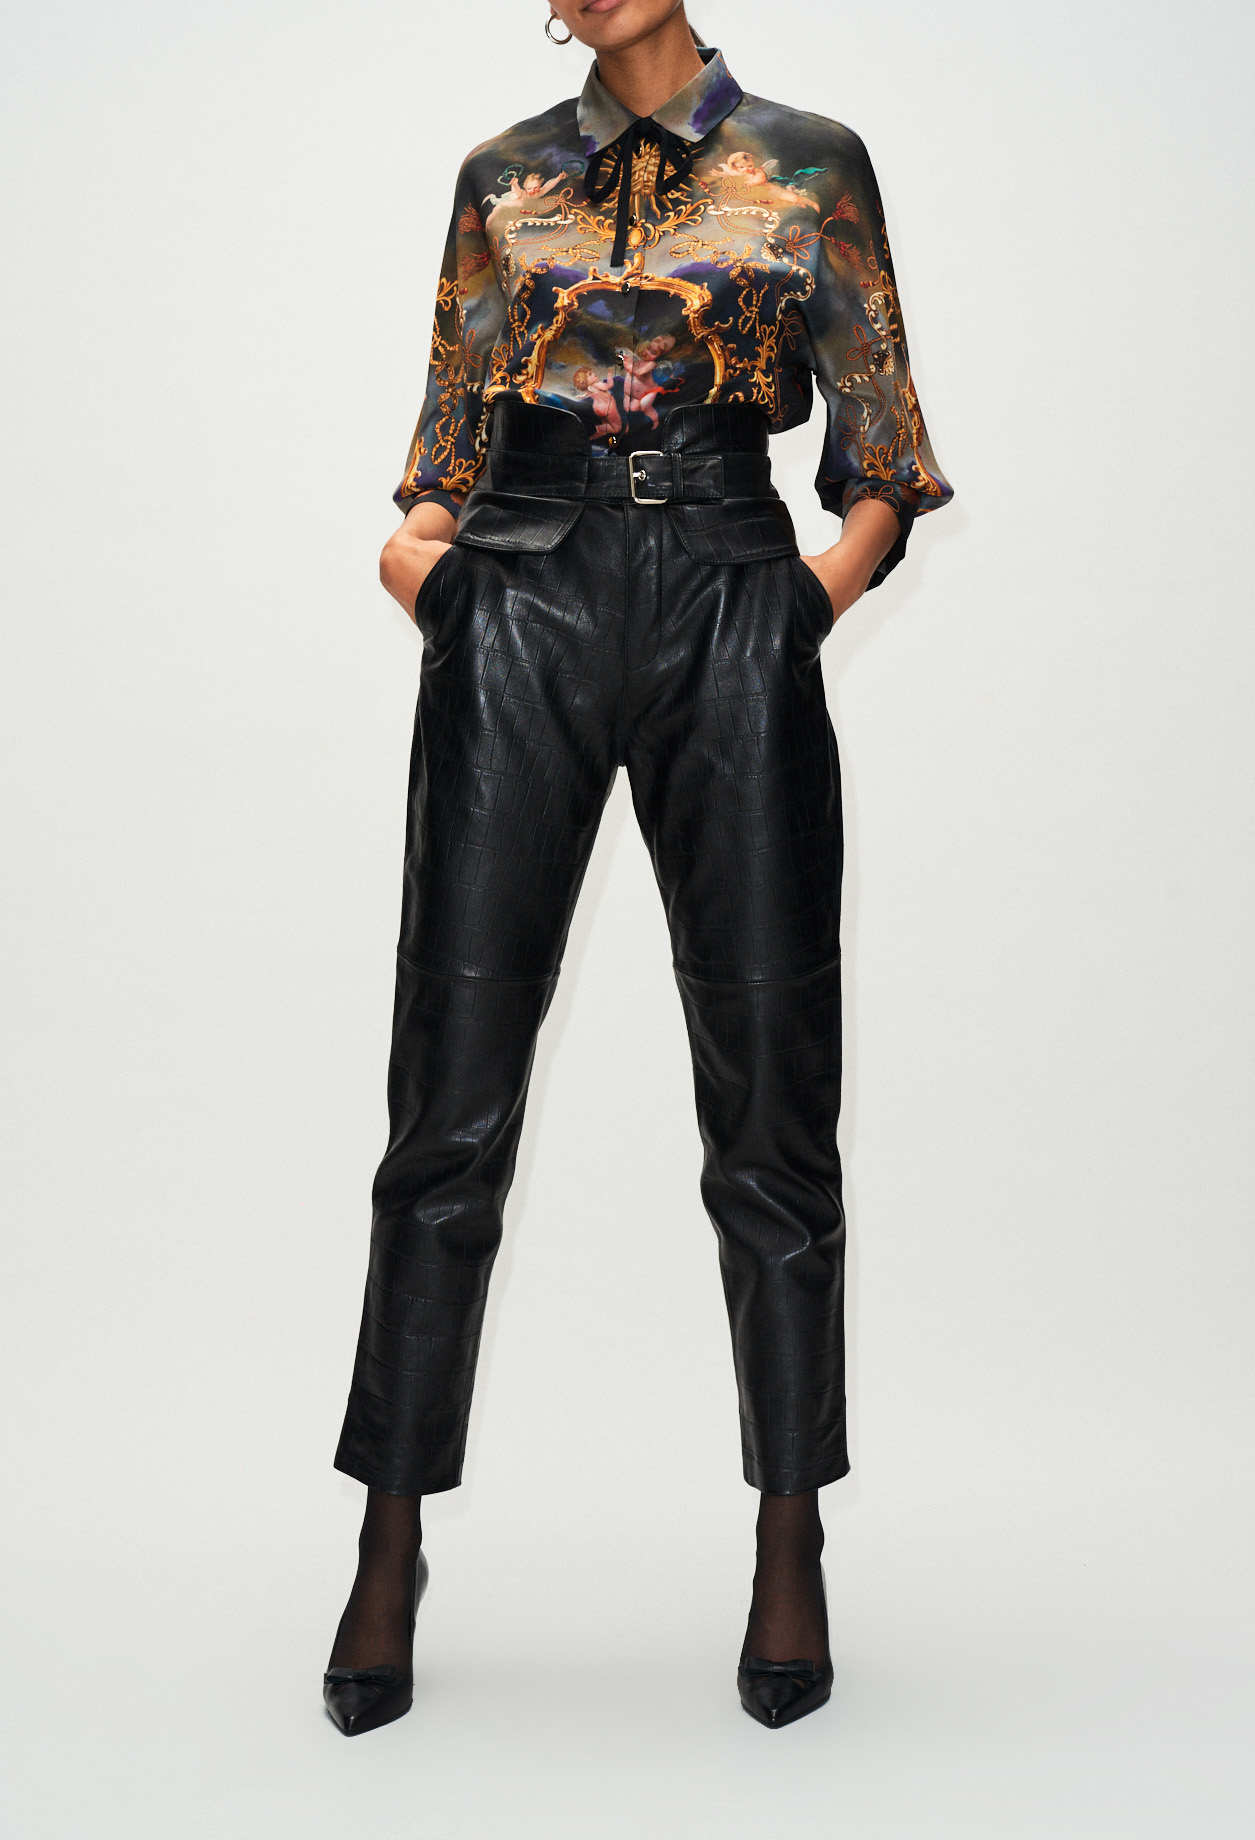 Leather crocodile patterned pants